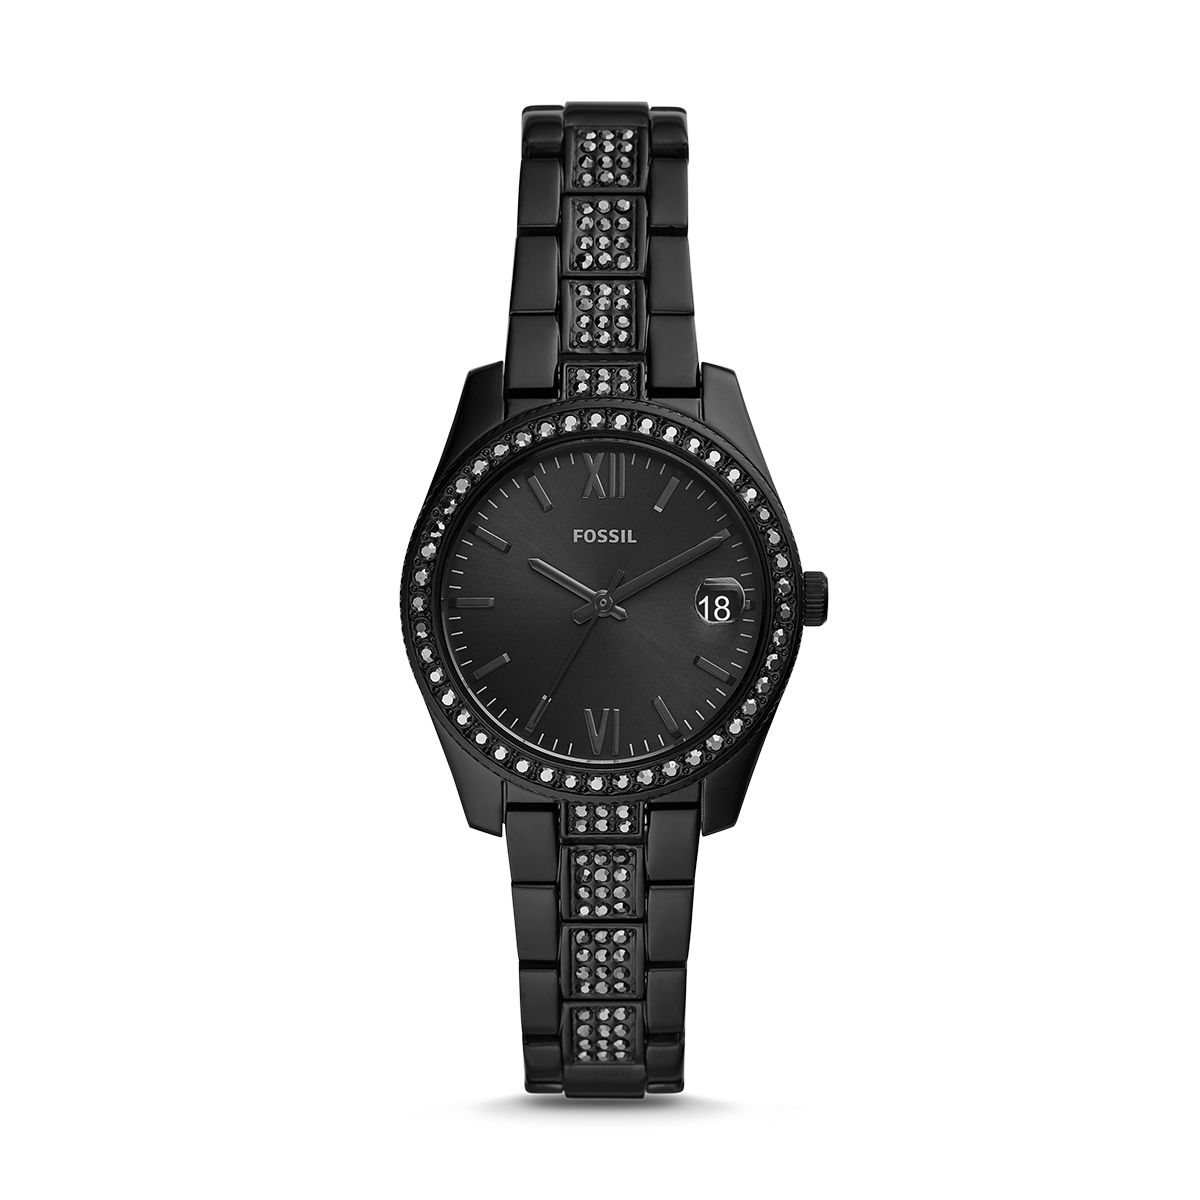 2089770d352 Fossil Watches - Macy s